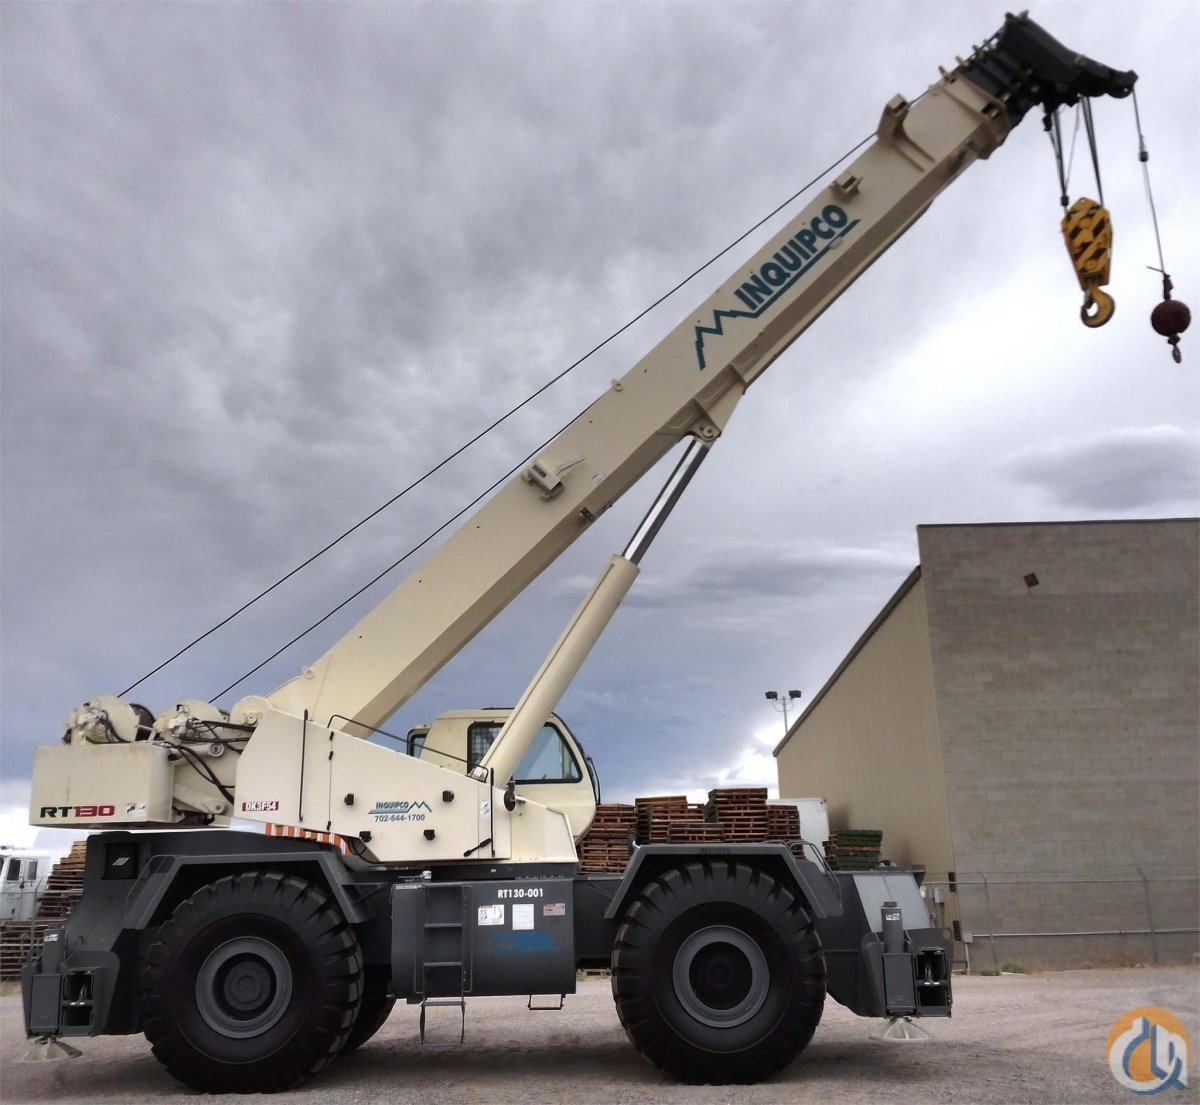 2011 TEREX RT130 Crane for Sale or Rent in Las Vegas Nevada on CraneNetwork.com